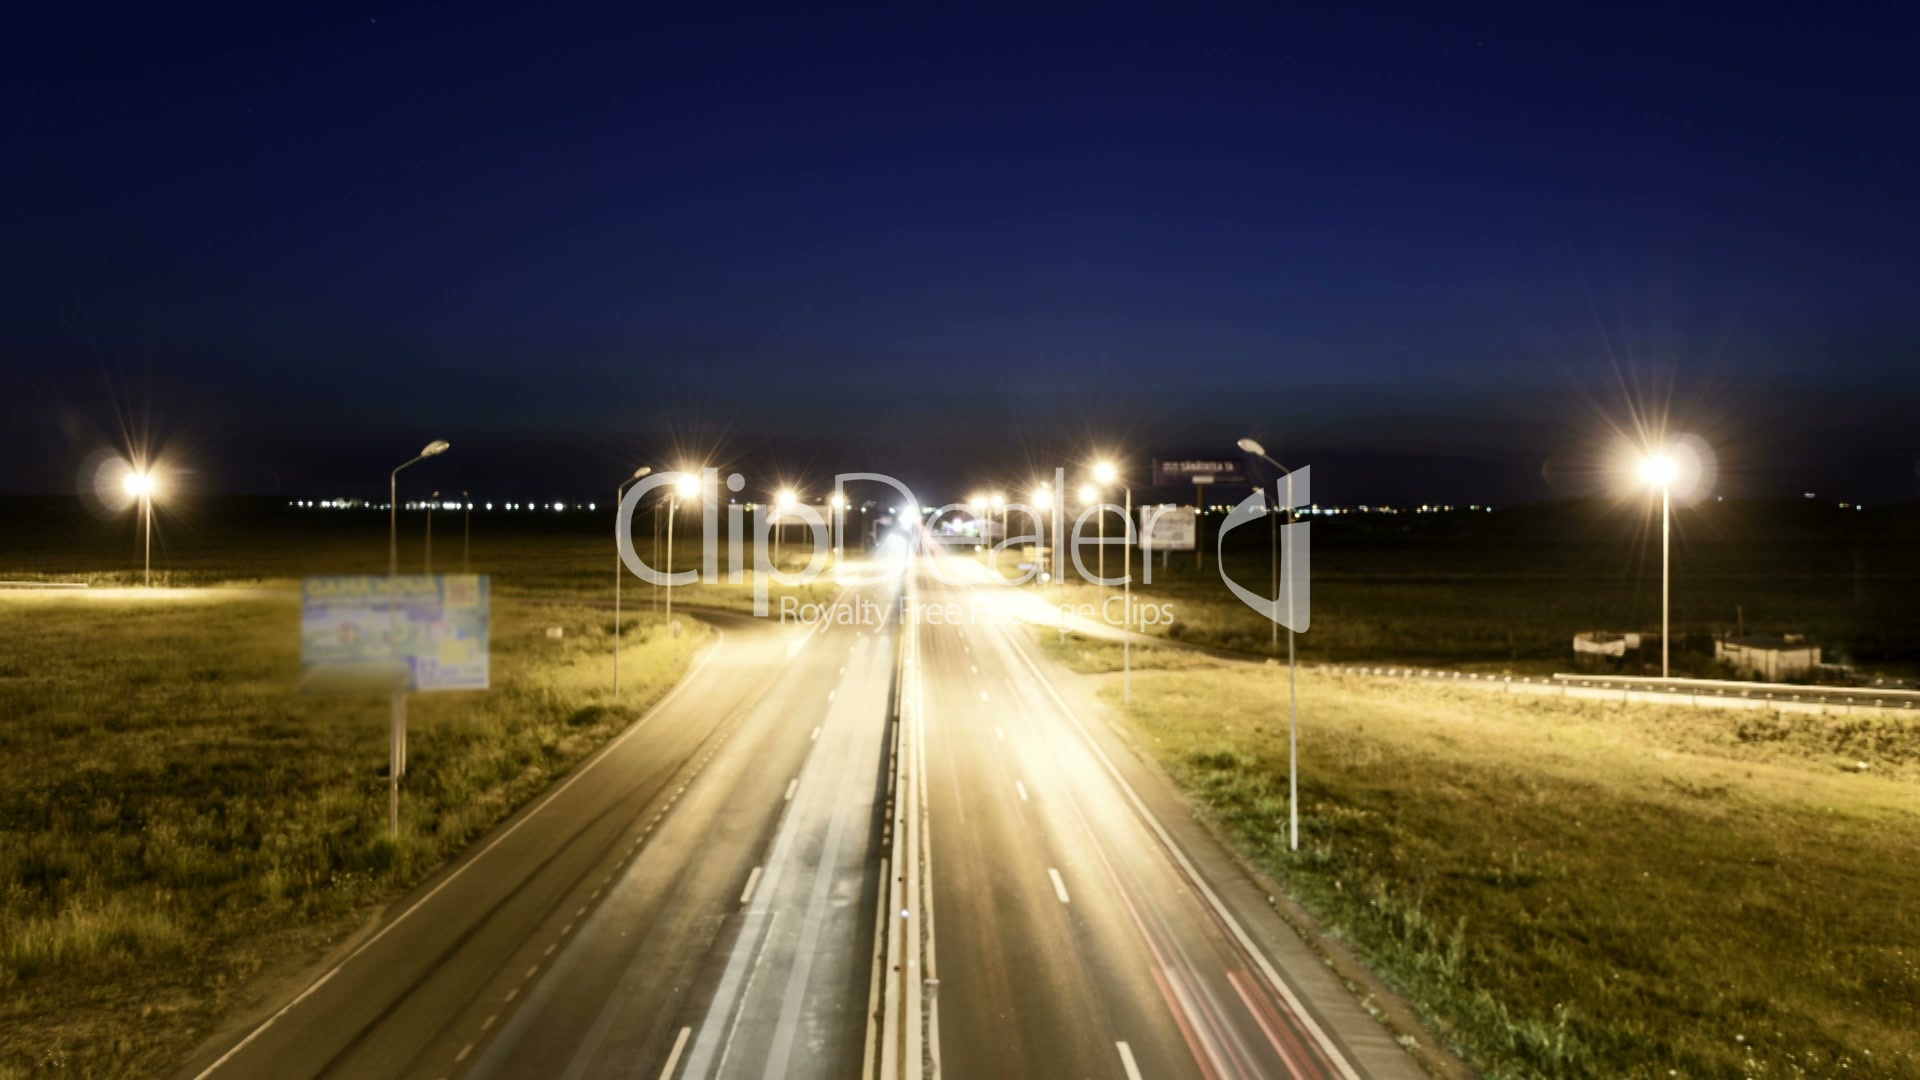 Speed Traffic at Sundown Time - light trails on motorway highway at